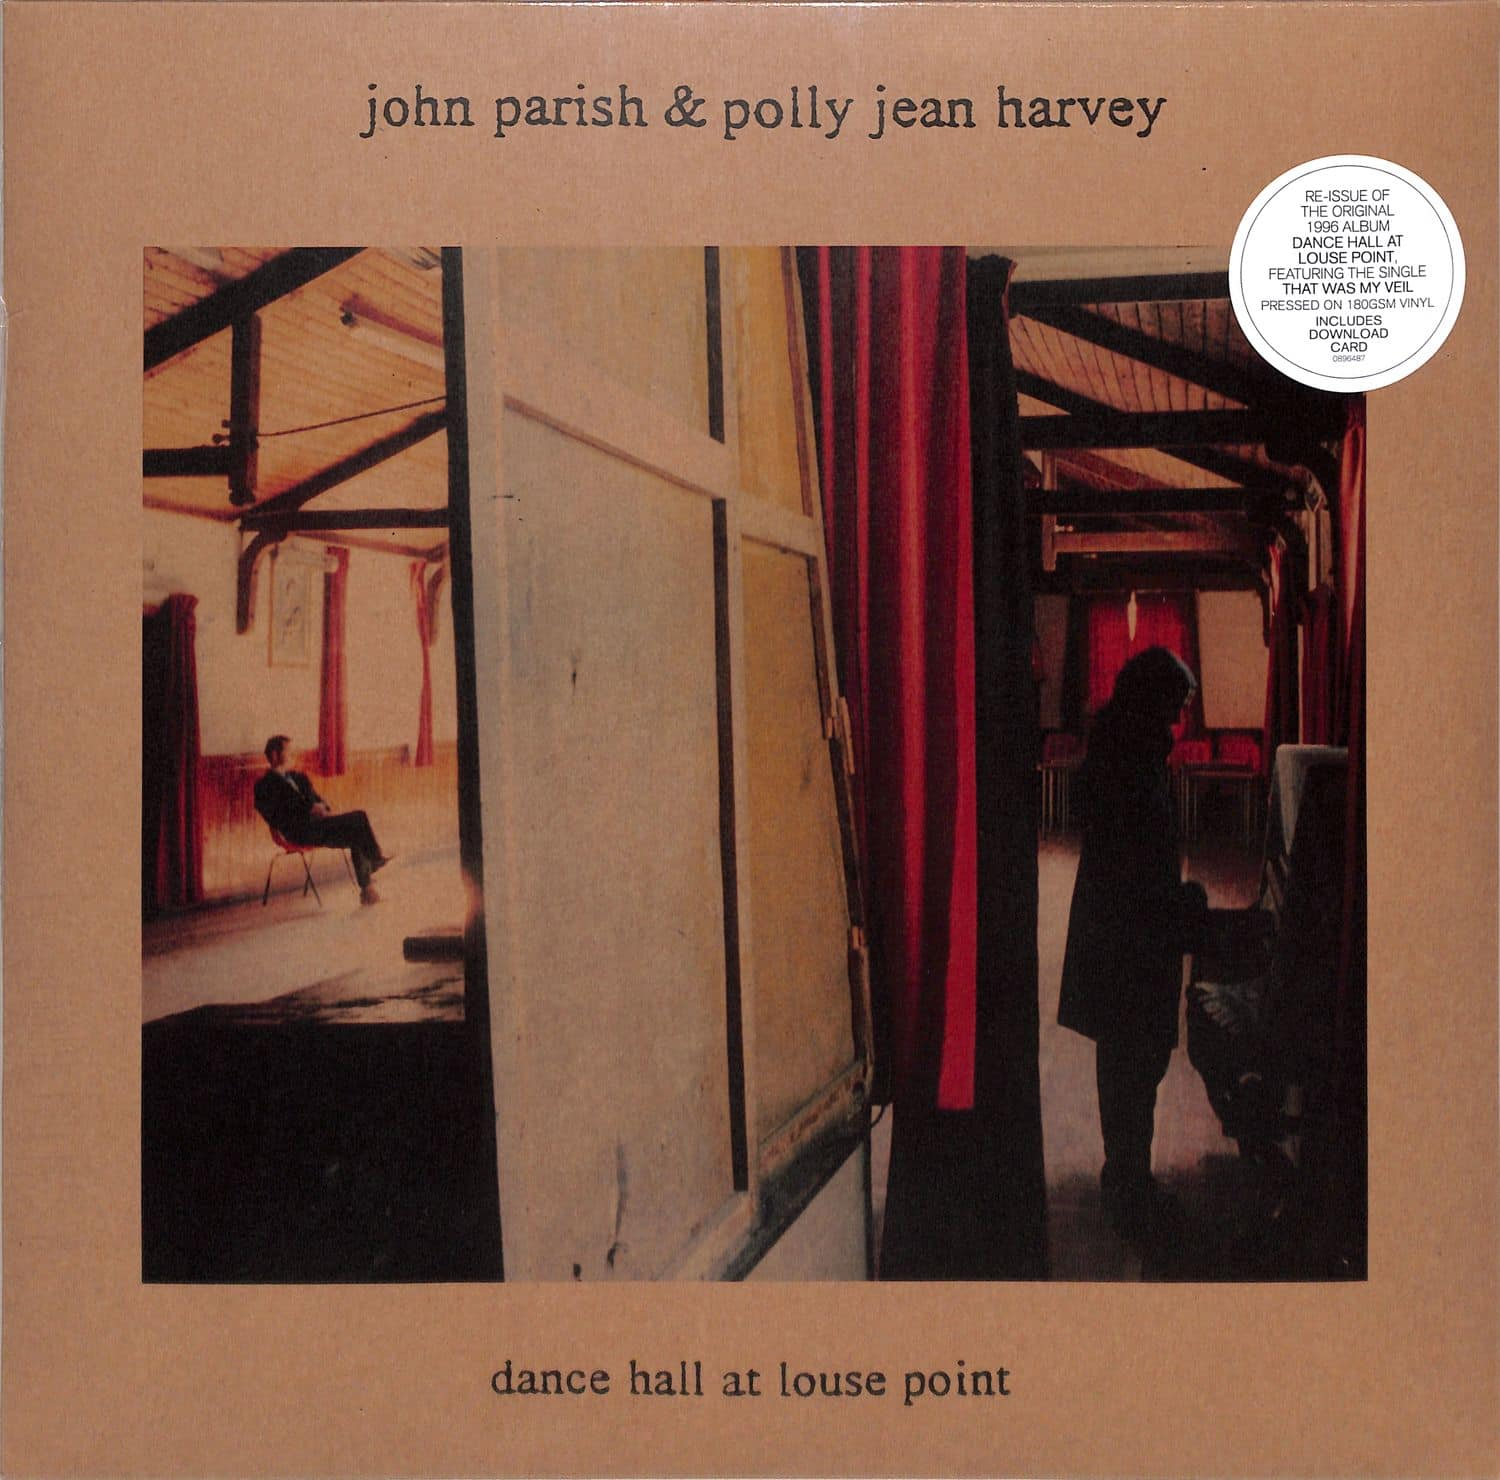 John Parish & PJ Harvey - DANCE HALL AT LOUSE POINT